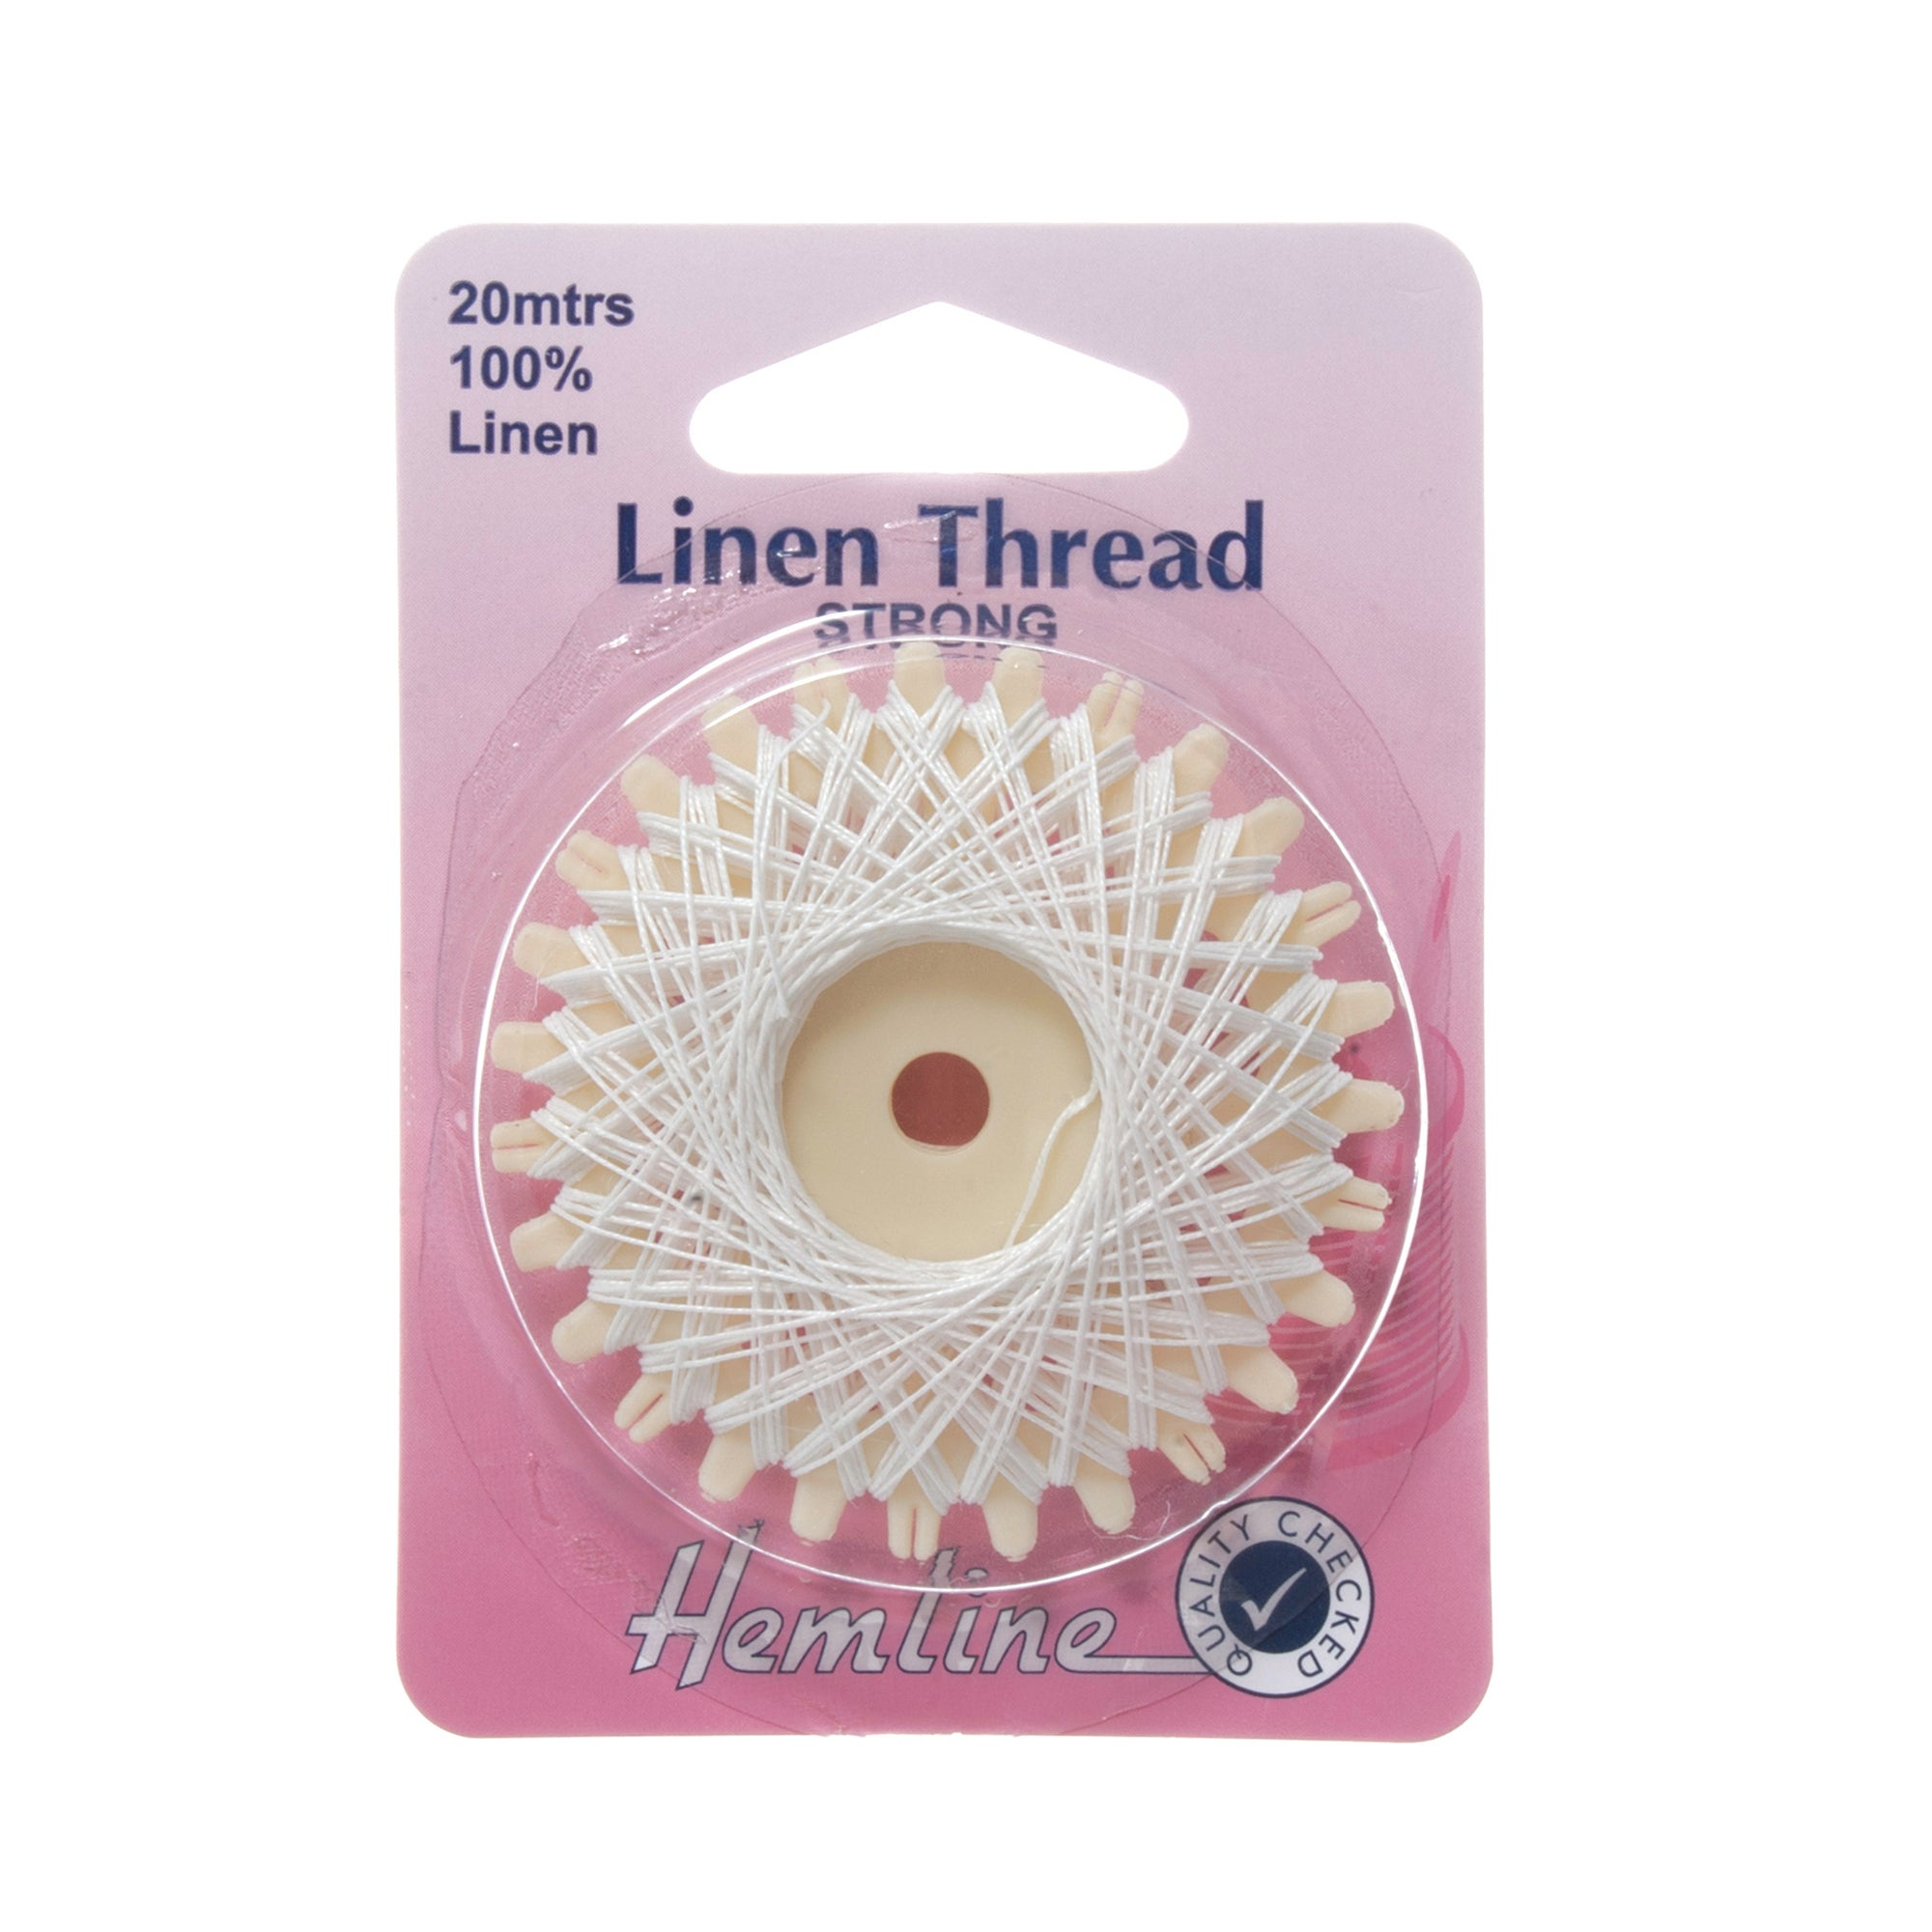 Hemline 20m Linen Thread